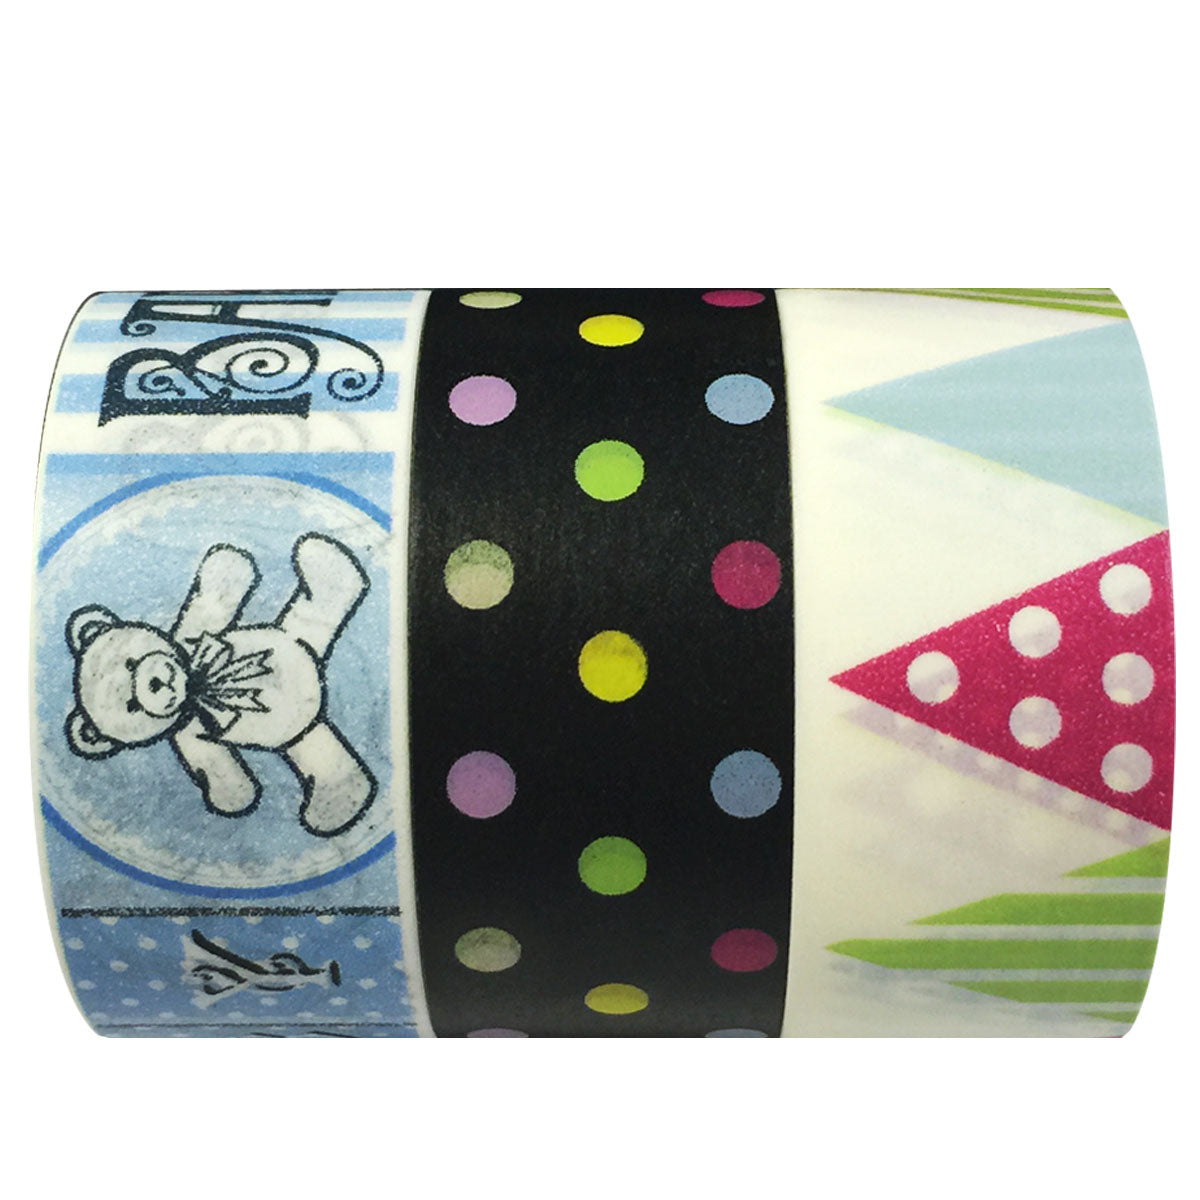 Wrapables Baby Shower Washi Masking Tape (set of 3)